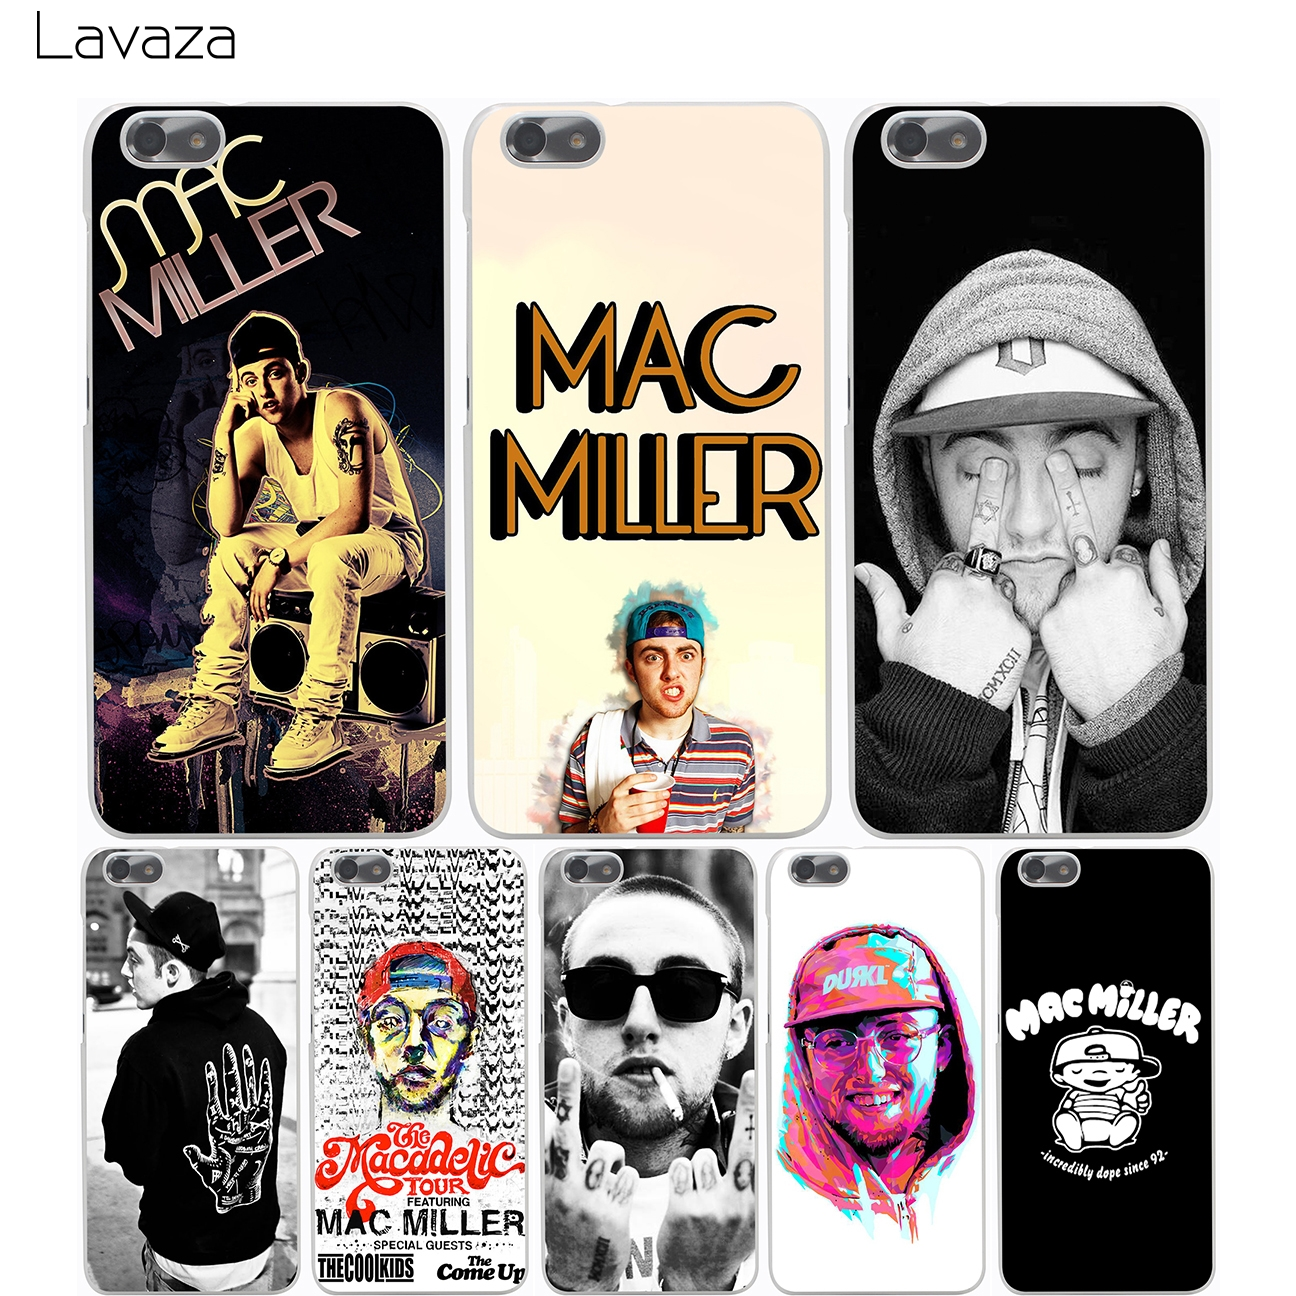 Lavaza Mac Miller Case for Huawei Honor 6a 7x 8 9 P8 P9 P10 P20 P Smart Mate 10 Lite Pro ...